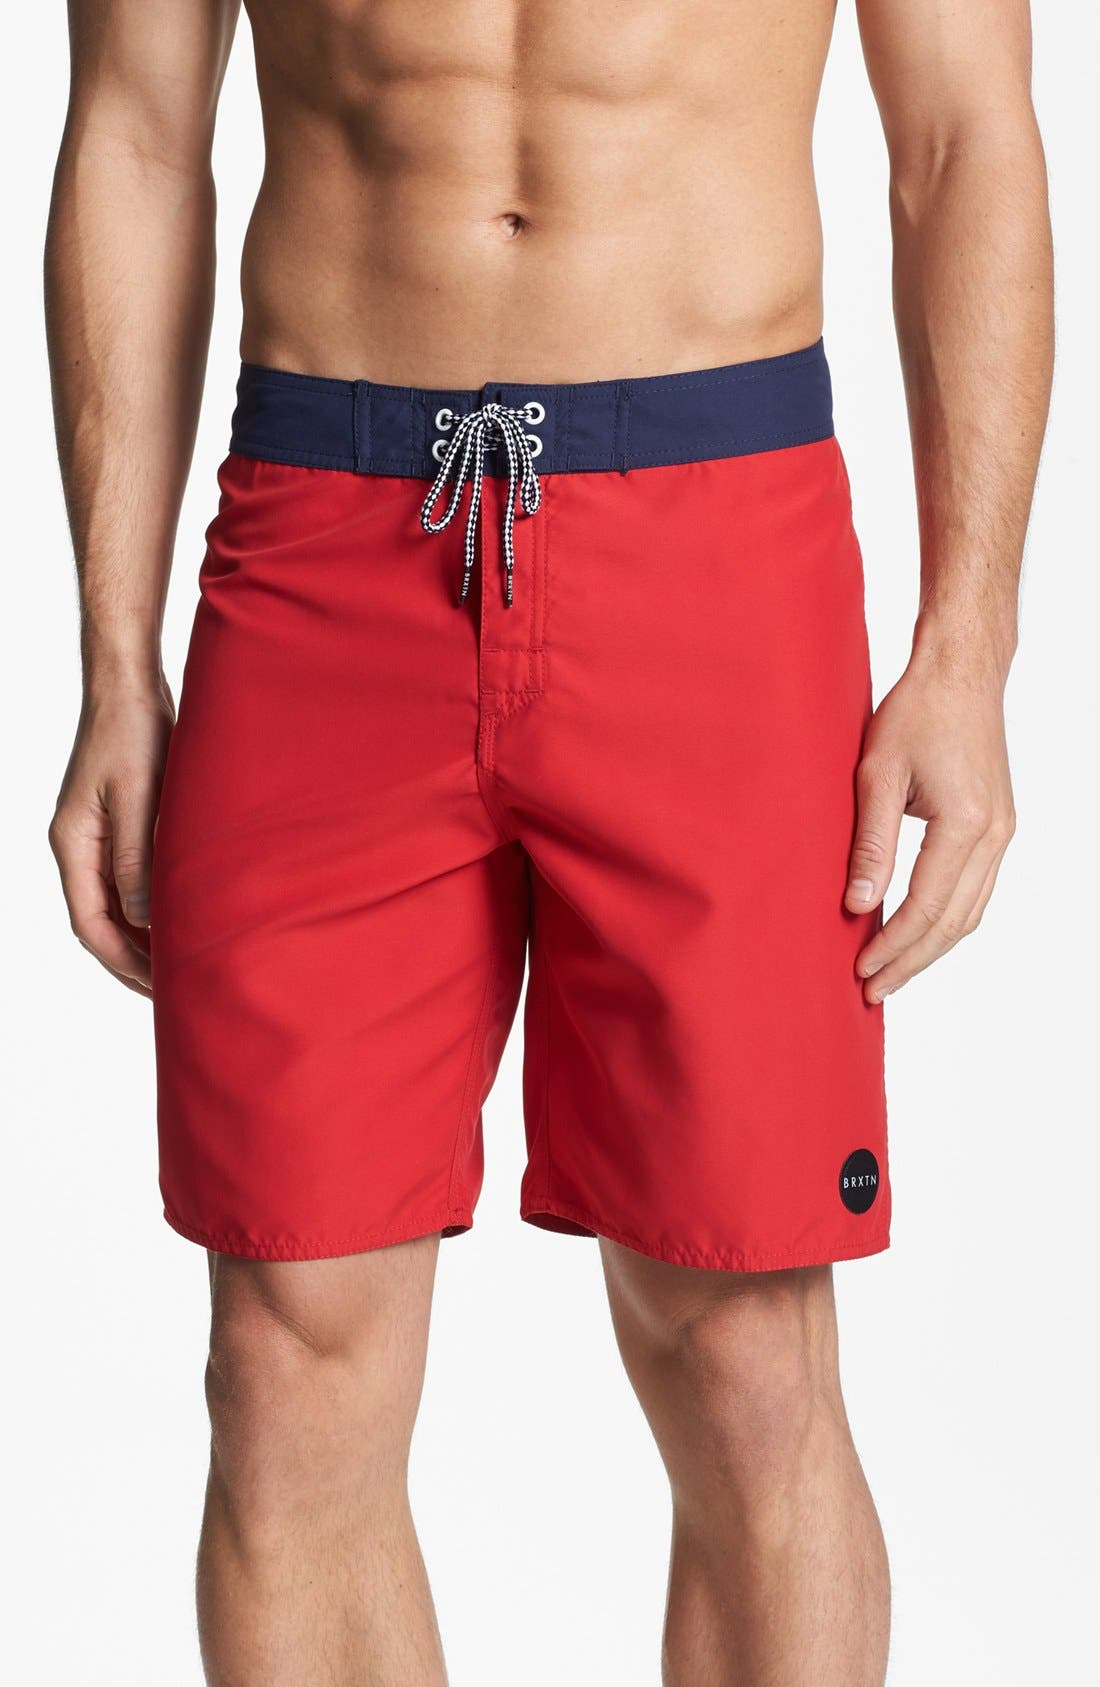 Alternate Image 1 Selected - Brixton 'Plank' Board Shorts